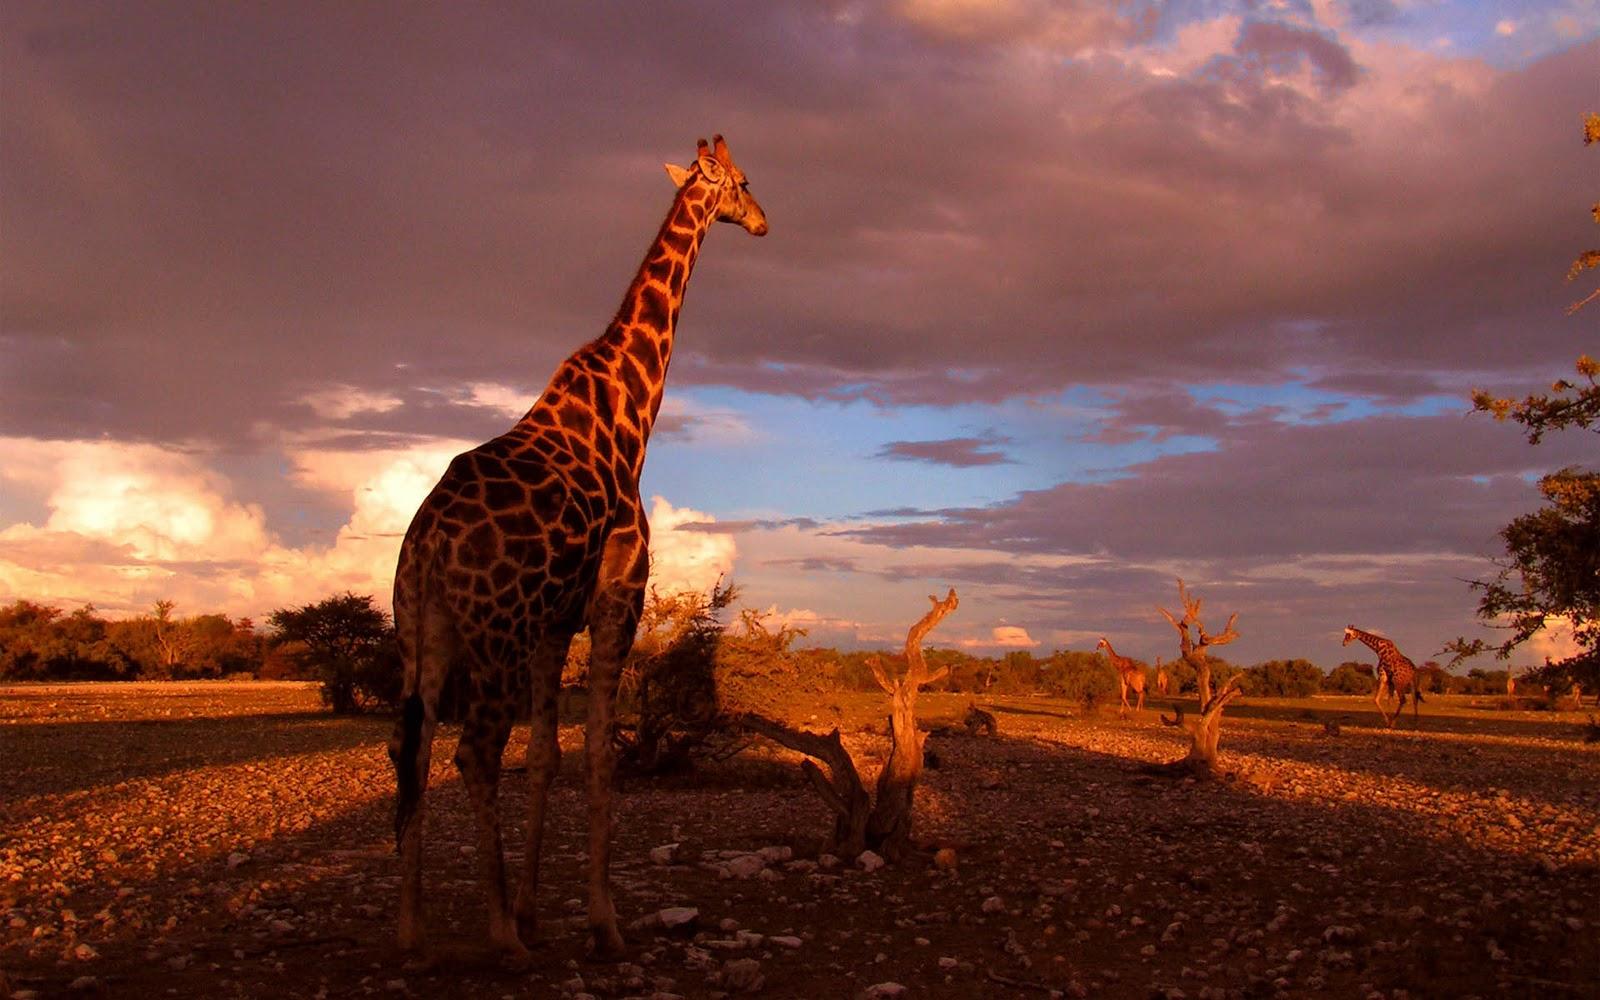 Giraffe Achtergronden | HD Wallpapers Wallpapers Bureaublad